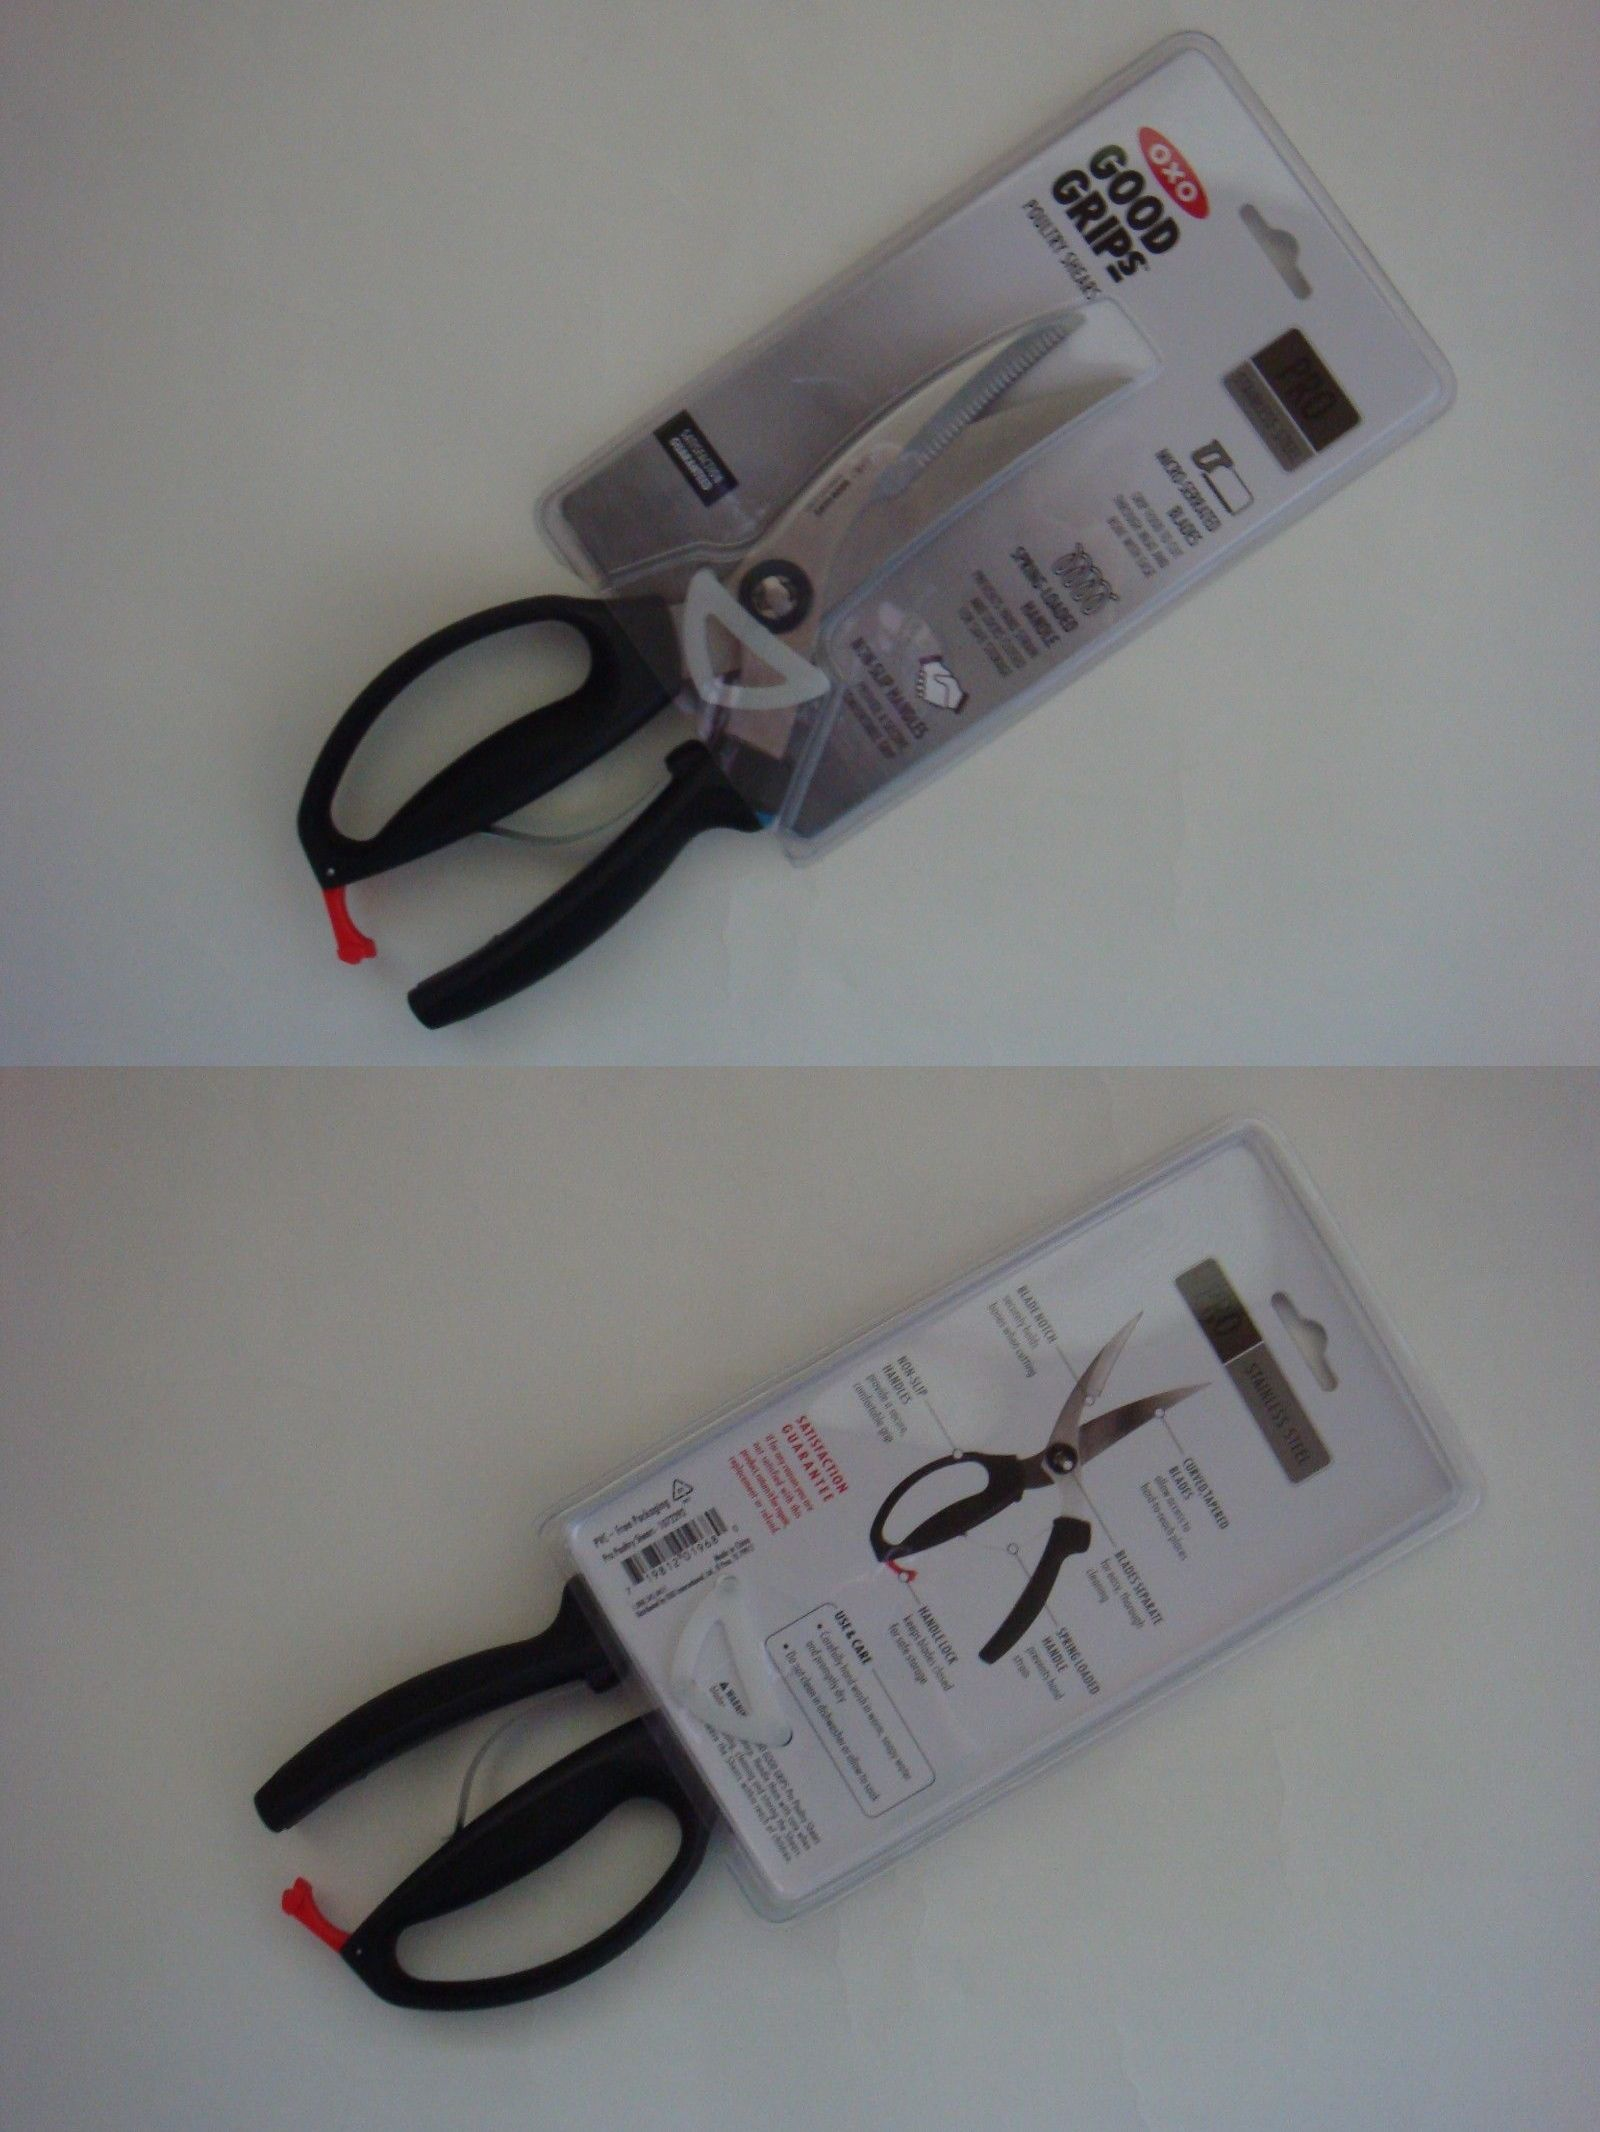 Scissors And Shears 122938: New Oxo Good Grips Pro Stainless Steel Kitchen  Poultry Shears